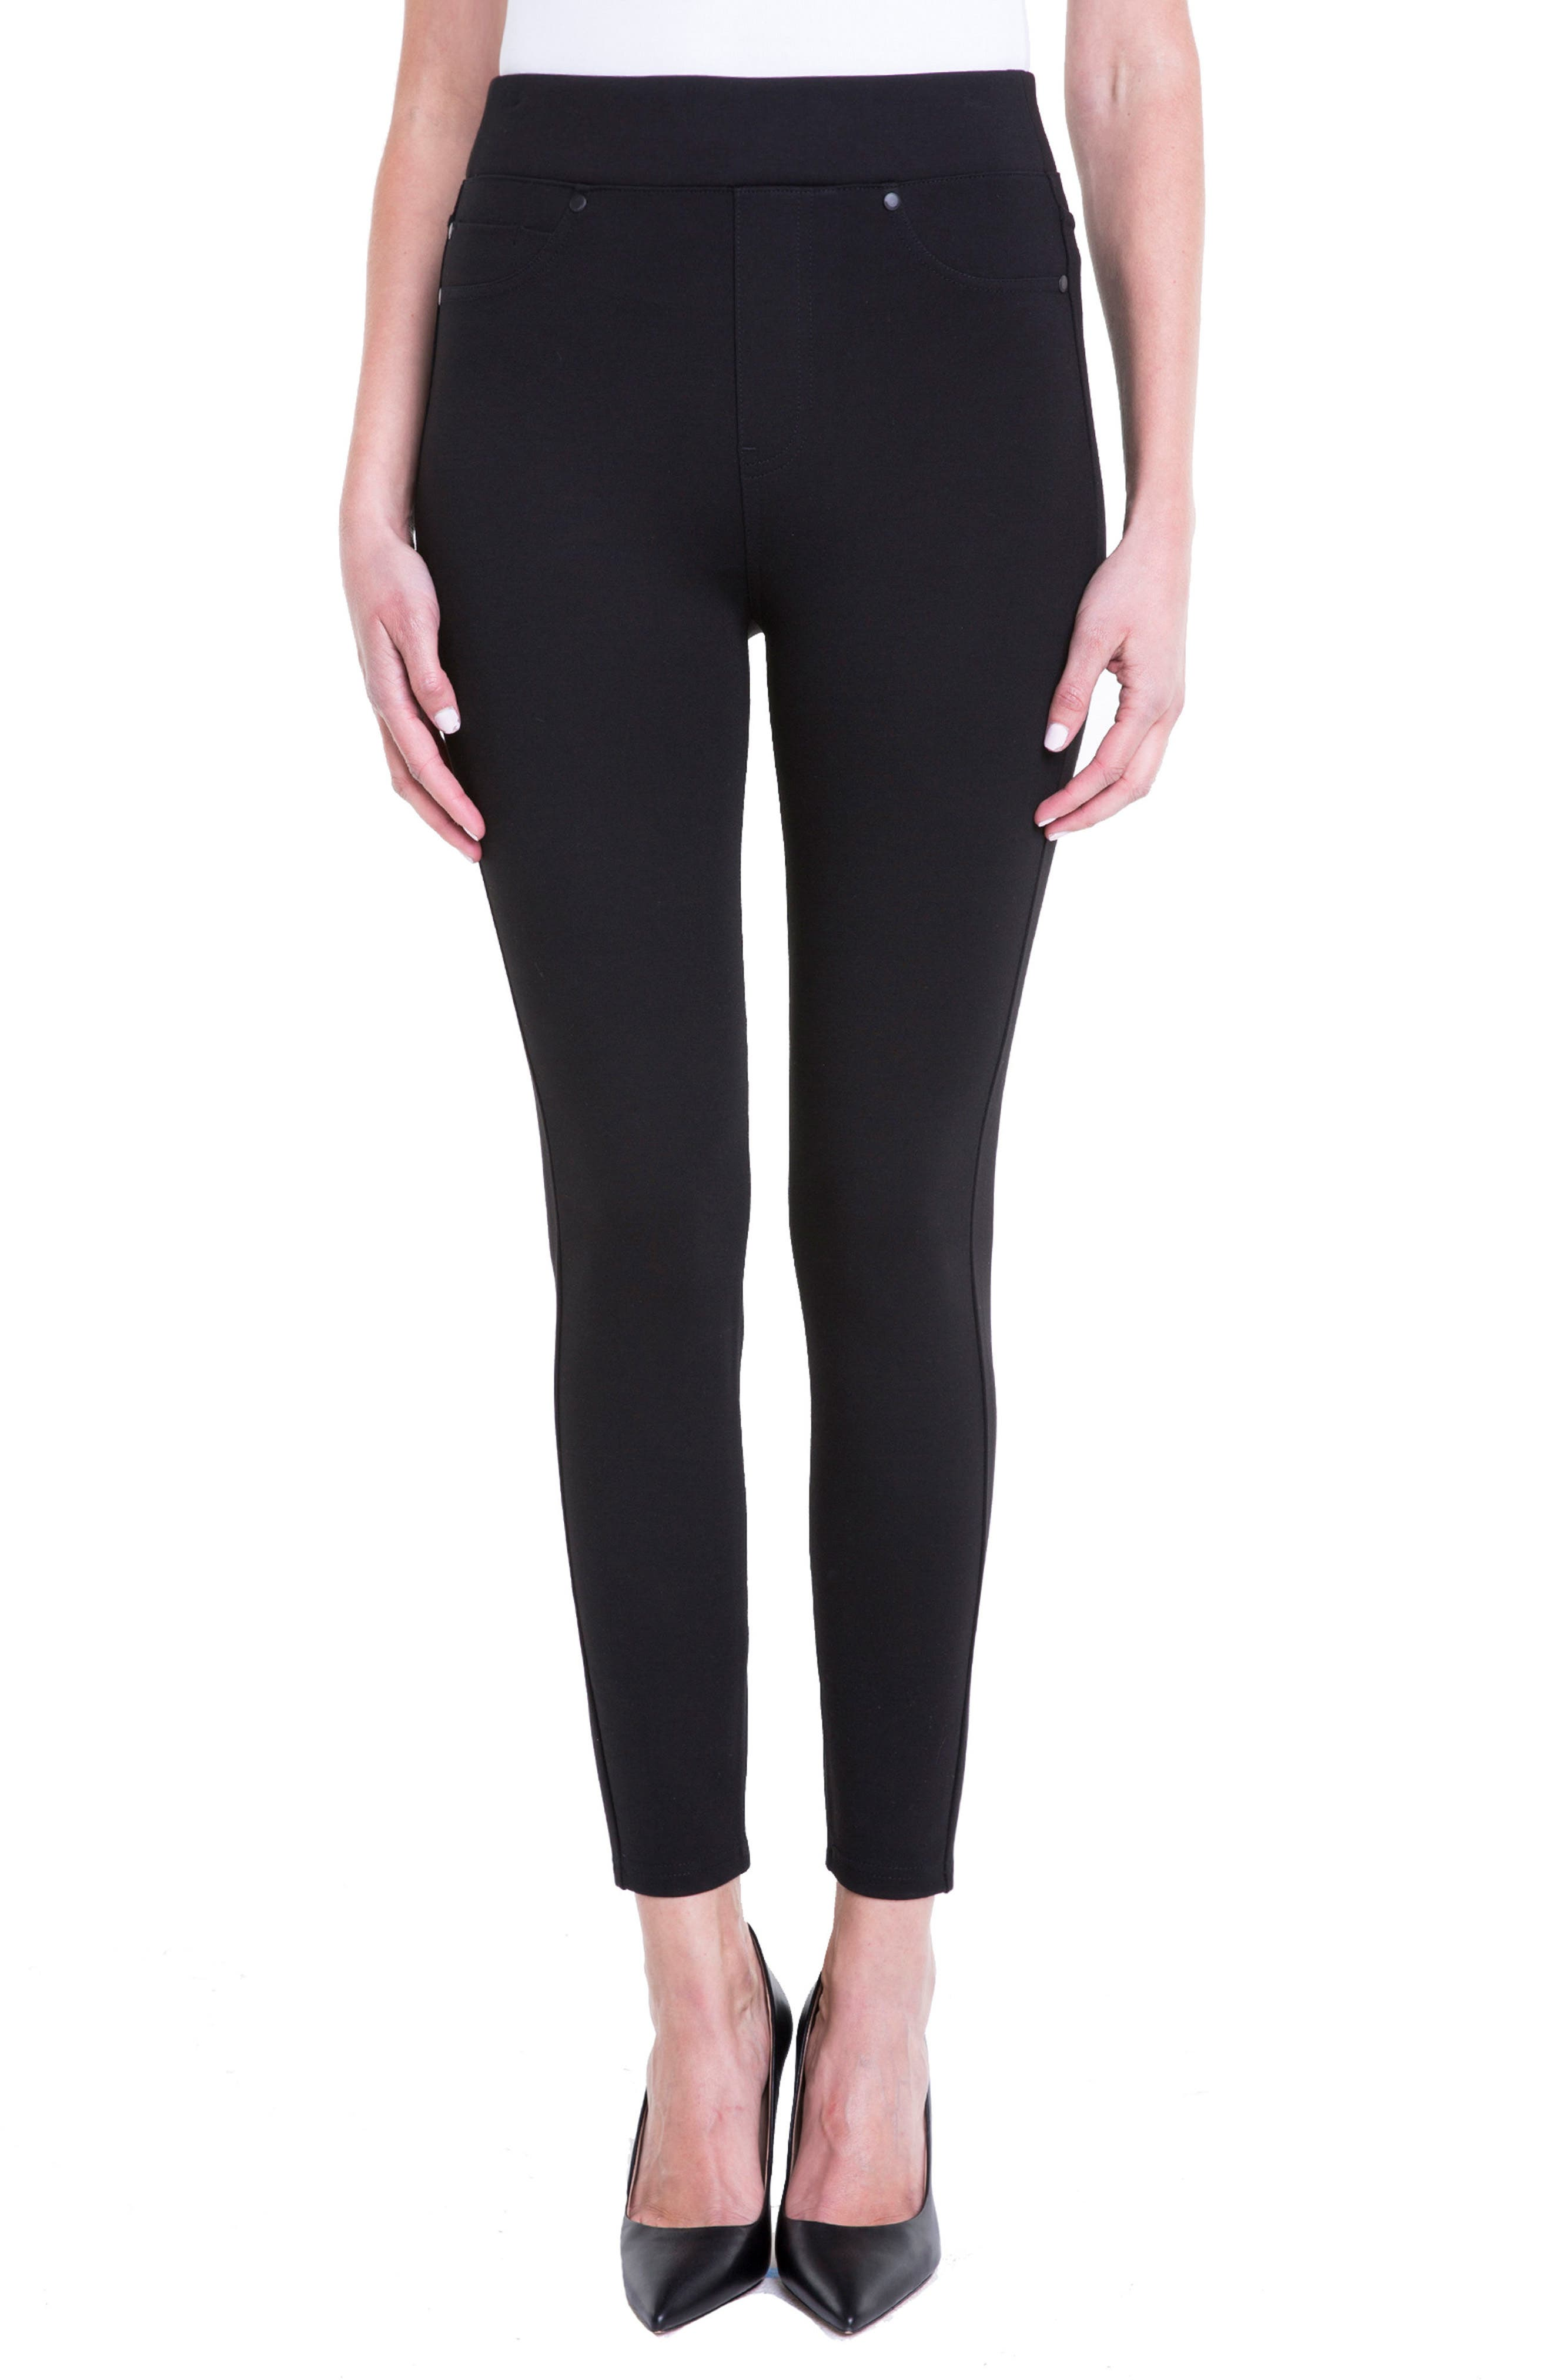 Liverpool Jeans Company Farrah High Waist Ankle Leggings